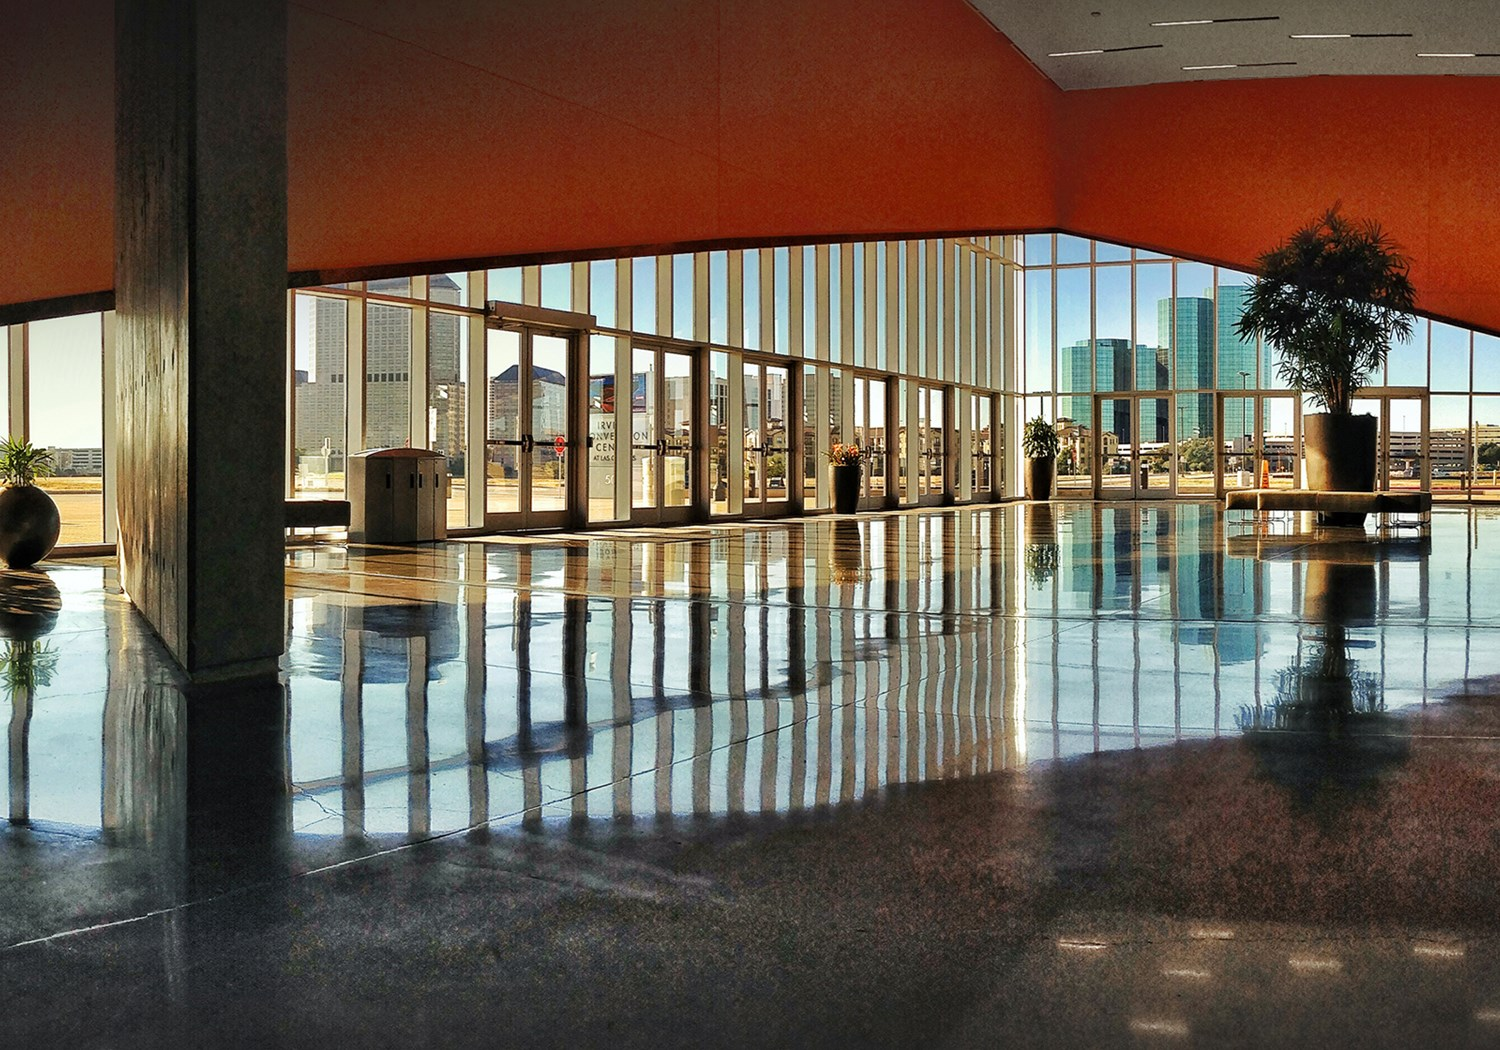 The Irving Convention Center at Las Colinas